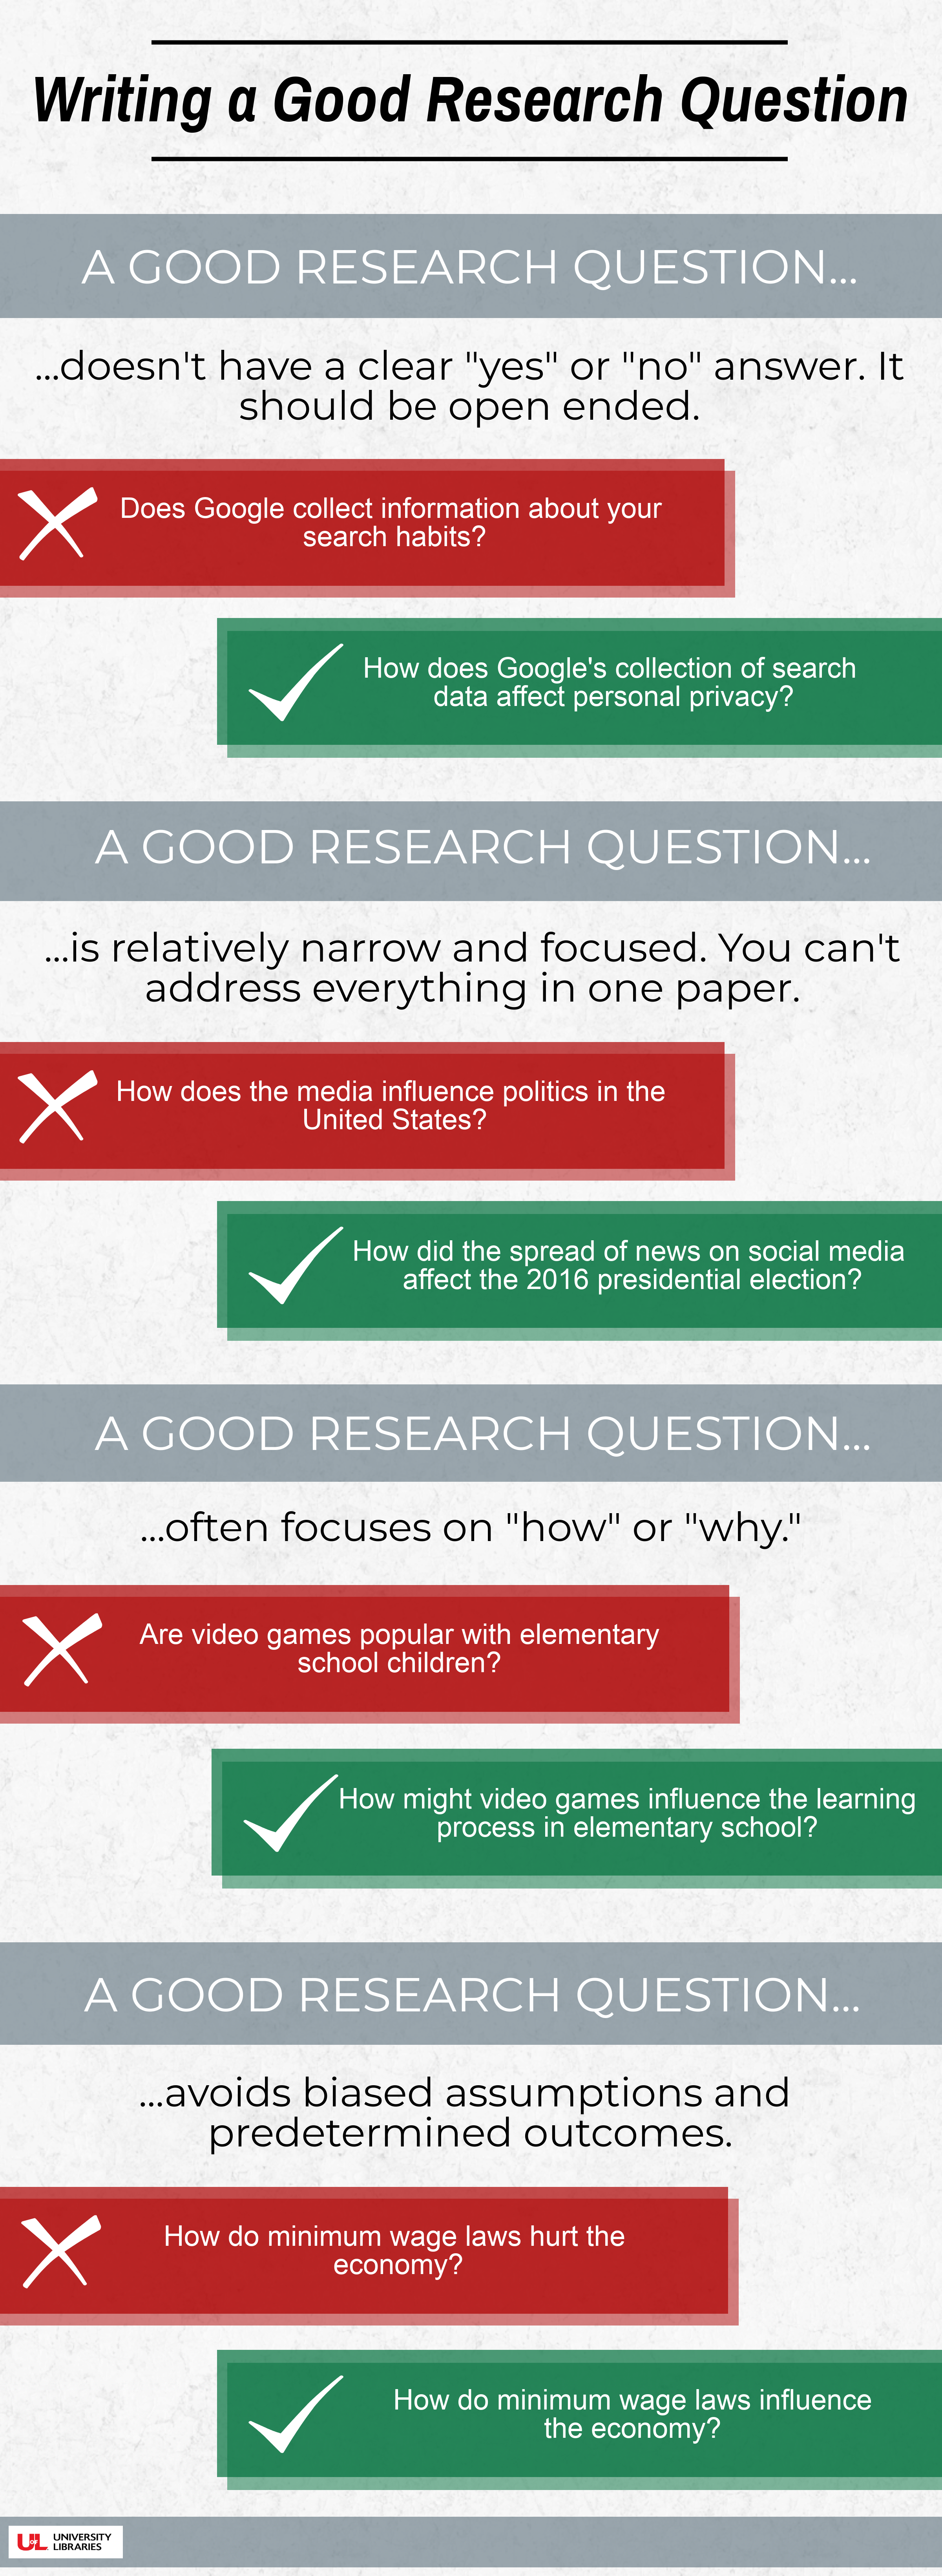 "A good research question doesn't have a clear yes or no answer. It should be open ended. For example, the research question ""Does Google collect information about your search habits?"" is not a good research question because it has a yes or no answer. A better, more open-ended research question would be ""How does Google's collection of search data affect personal privacy?"" A good research question is relatively narrow and focused. You can't address everything in one paper. For example, the research question ""How does the media influence politics in the United States?"" is not a good research question because it is too broad. A better, more focused research question would be ""How did the spread of news on social media affect the 2016 presidential election?"" A good research question often focuses on ""how"" or ""why"". For example, the research question ""Are video games popular with elementary school children"" is not a good research because it doesn't focus on how or why. A better research question would be ""How might video games influence the learning process in elementary school?"" A good research question avoids biased assumptions and predetermined outcomes. For example, the research question ""How do minimum wage laws hurt the economy"" is not a good research question because it contains biased assumptions. A better research question would be ""How do minimum wage laws influence the economy?"""